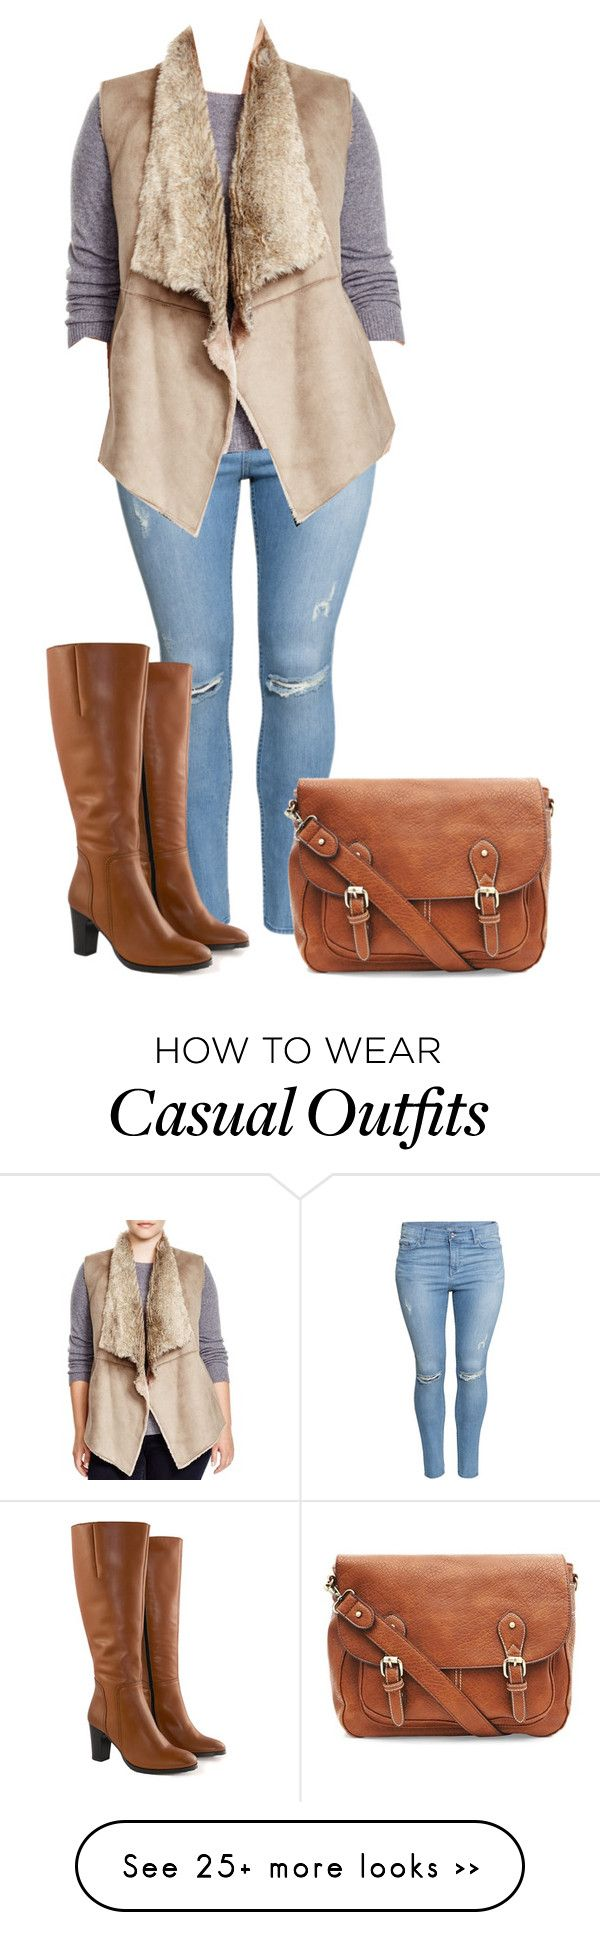 """Casual"" by ltspork on Polyvore featuring H&M, Jilsen Quality Boots, NIC+ZOE and plus size clothing"